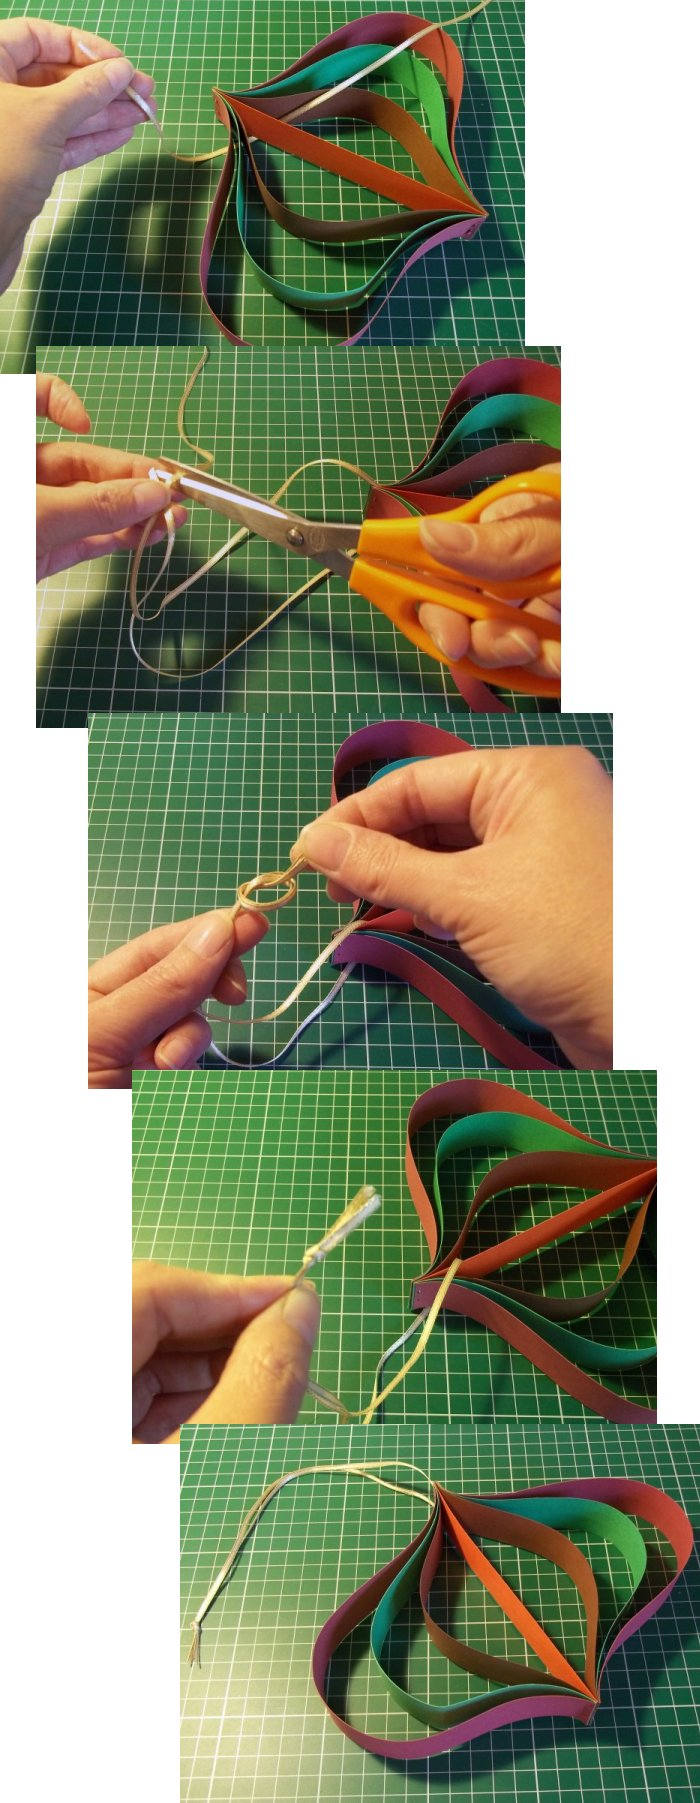 Things to make and do   Curved Paper hanging decoration. Things to Make and Do   Curved Paper hanging decoration